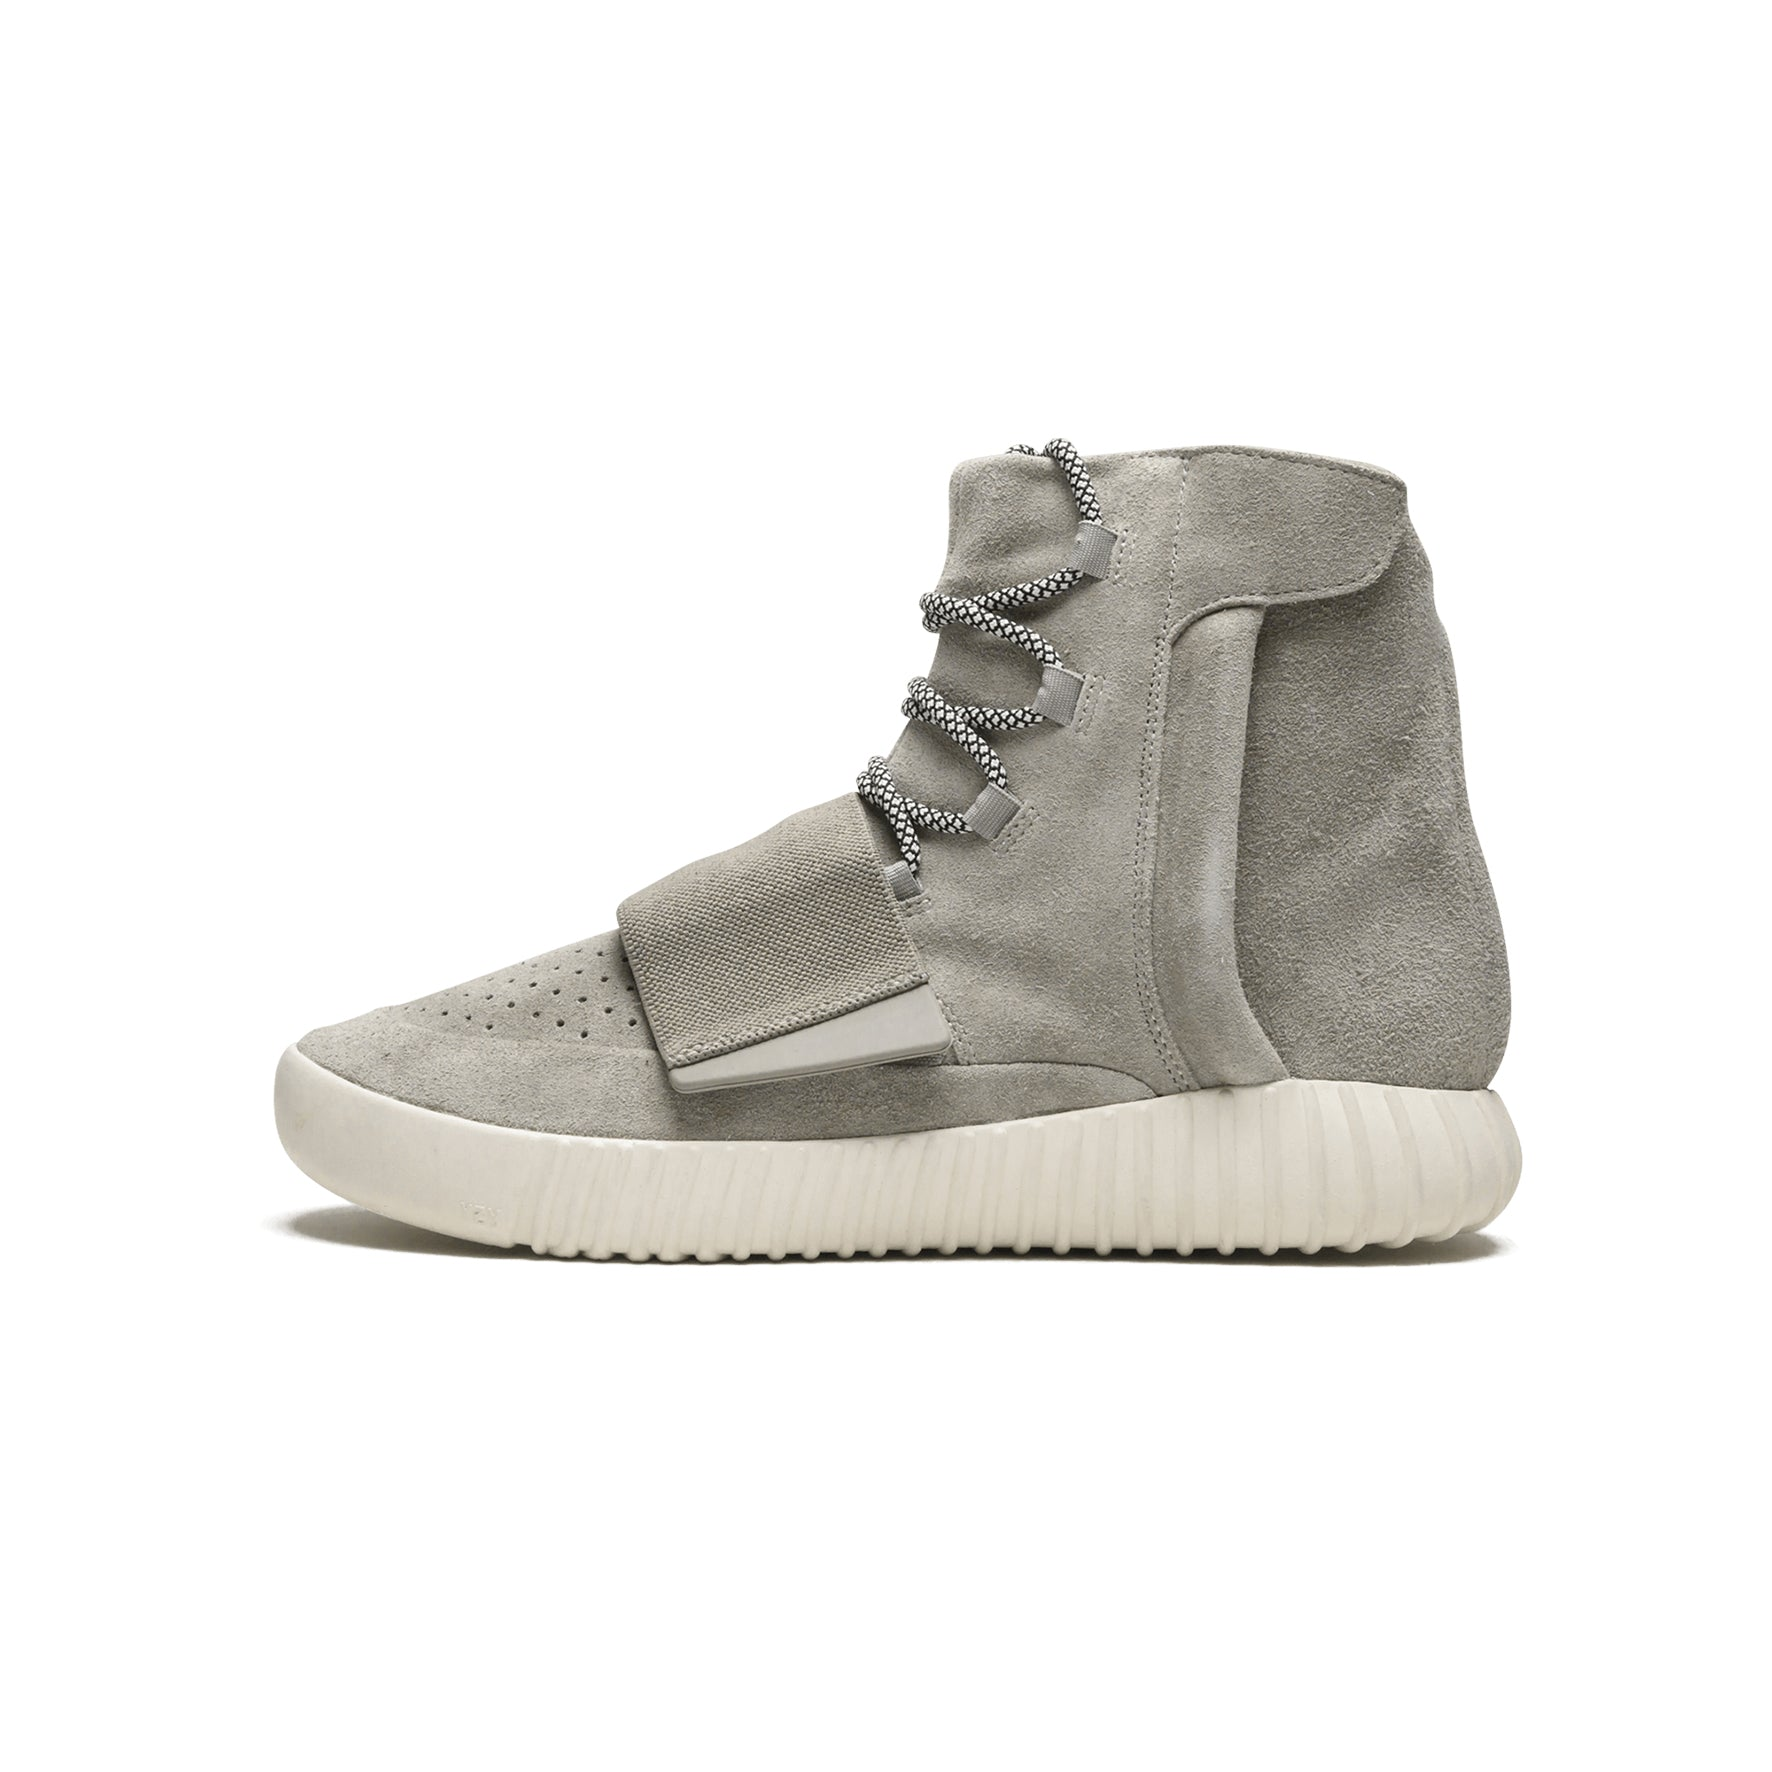 Adidas Yeezy Boost 750 Light Brown - B35309 - Sneakersfromfrance